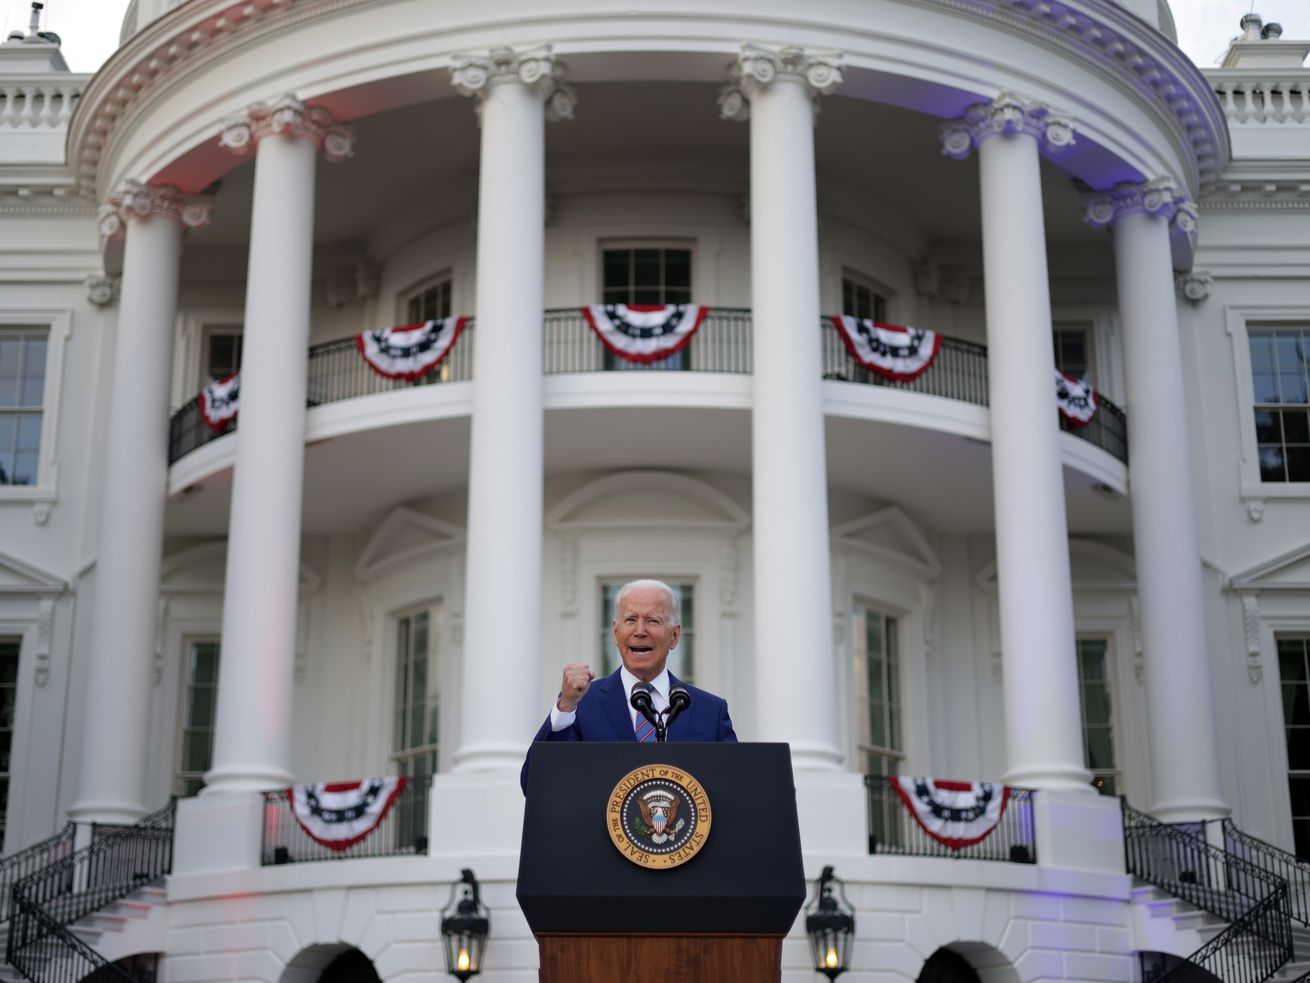 President Biden speaks from behind a lectern and in front of the White House, which is festooned with red, white, and blue bunting.